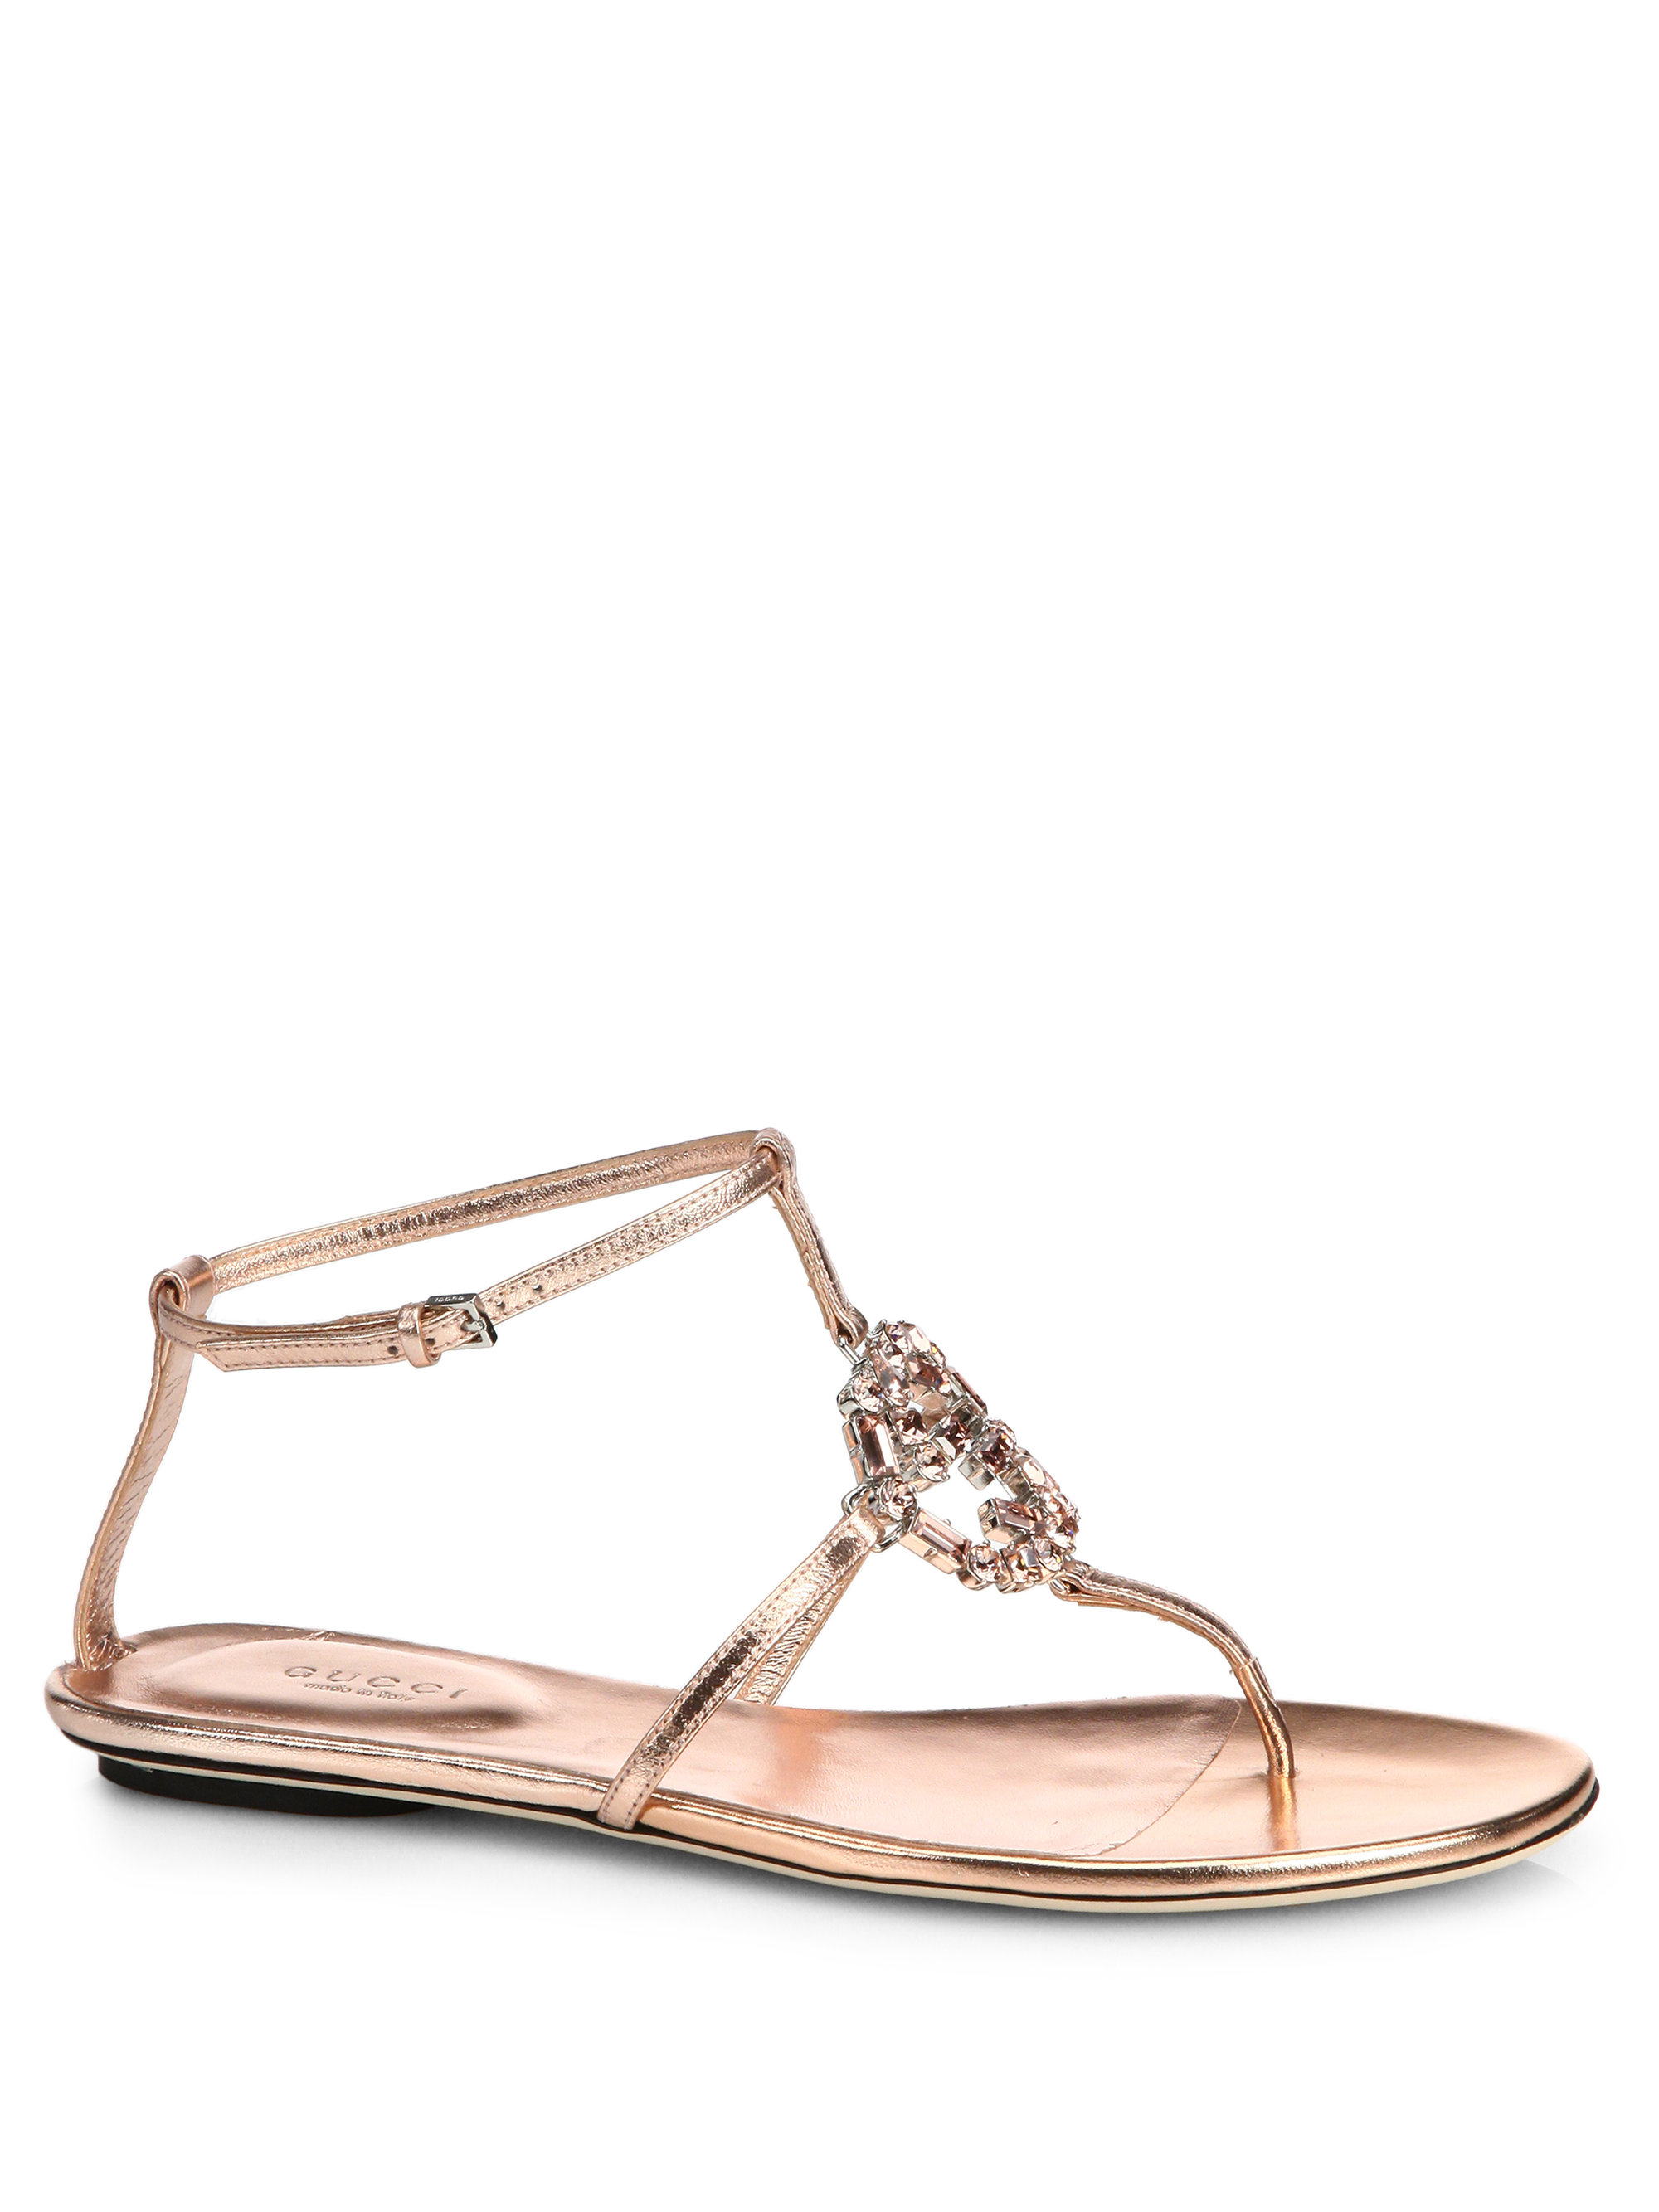 010b2ca97fec Lyst - Gucci Gg Sparkling Crystal   Leather Sandals in Pink